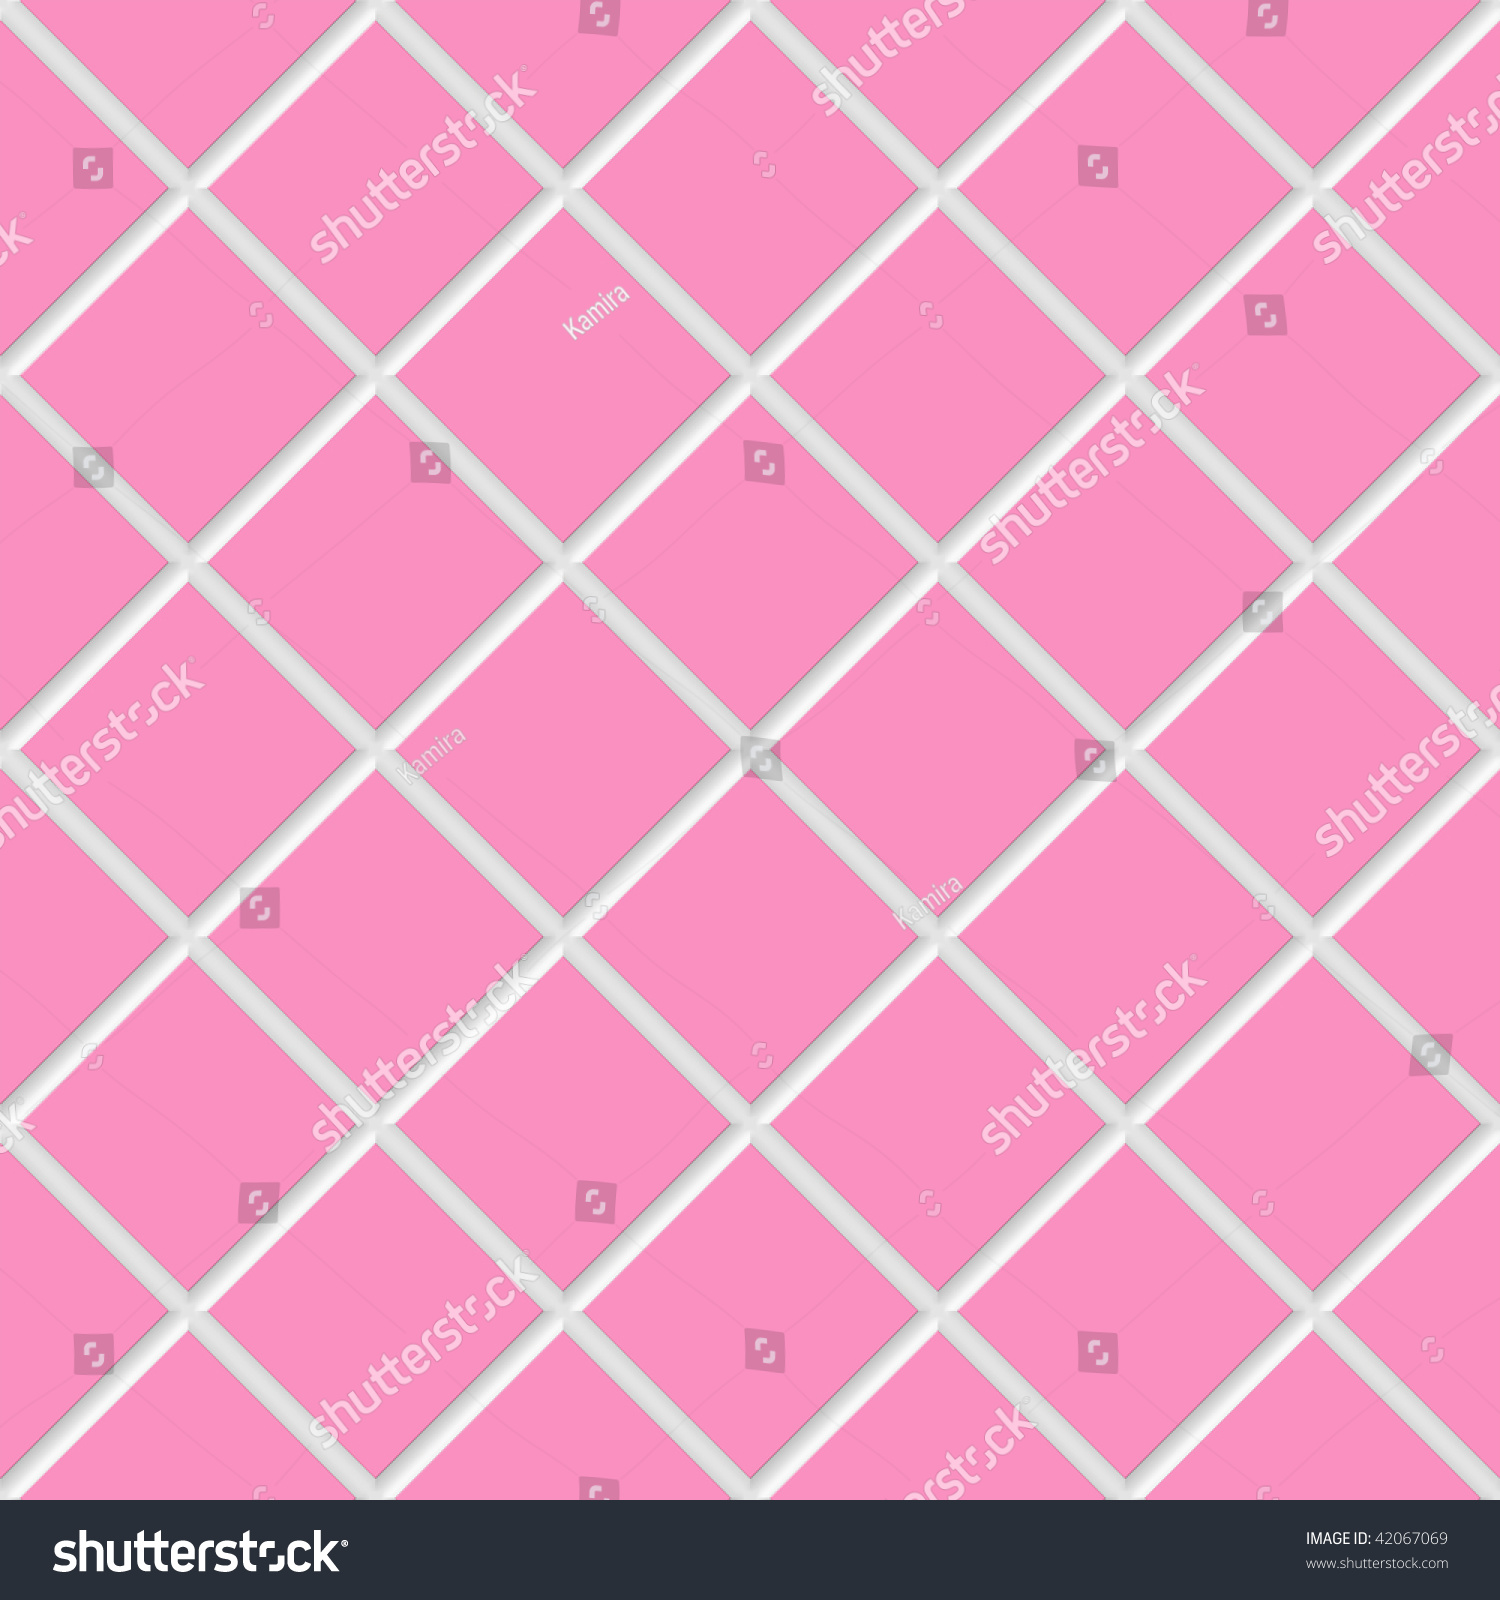 Beautiful Pink Mosaic Tiles Pretty Pink Bathroom Tiles At Trade Prices  600x600